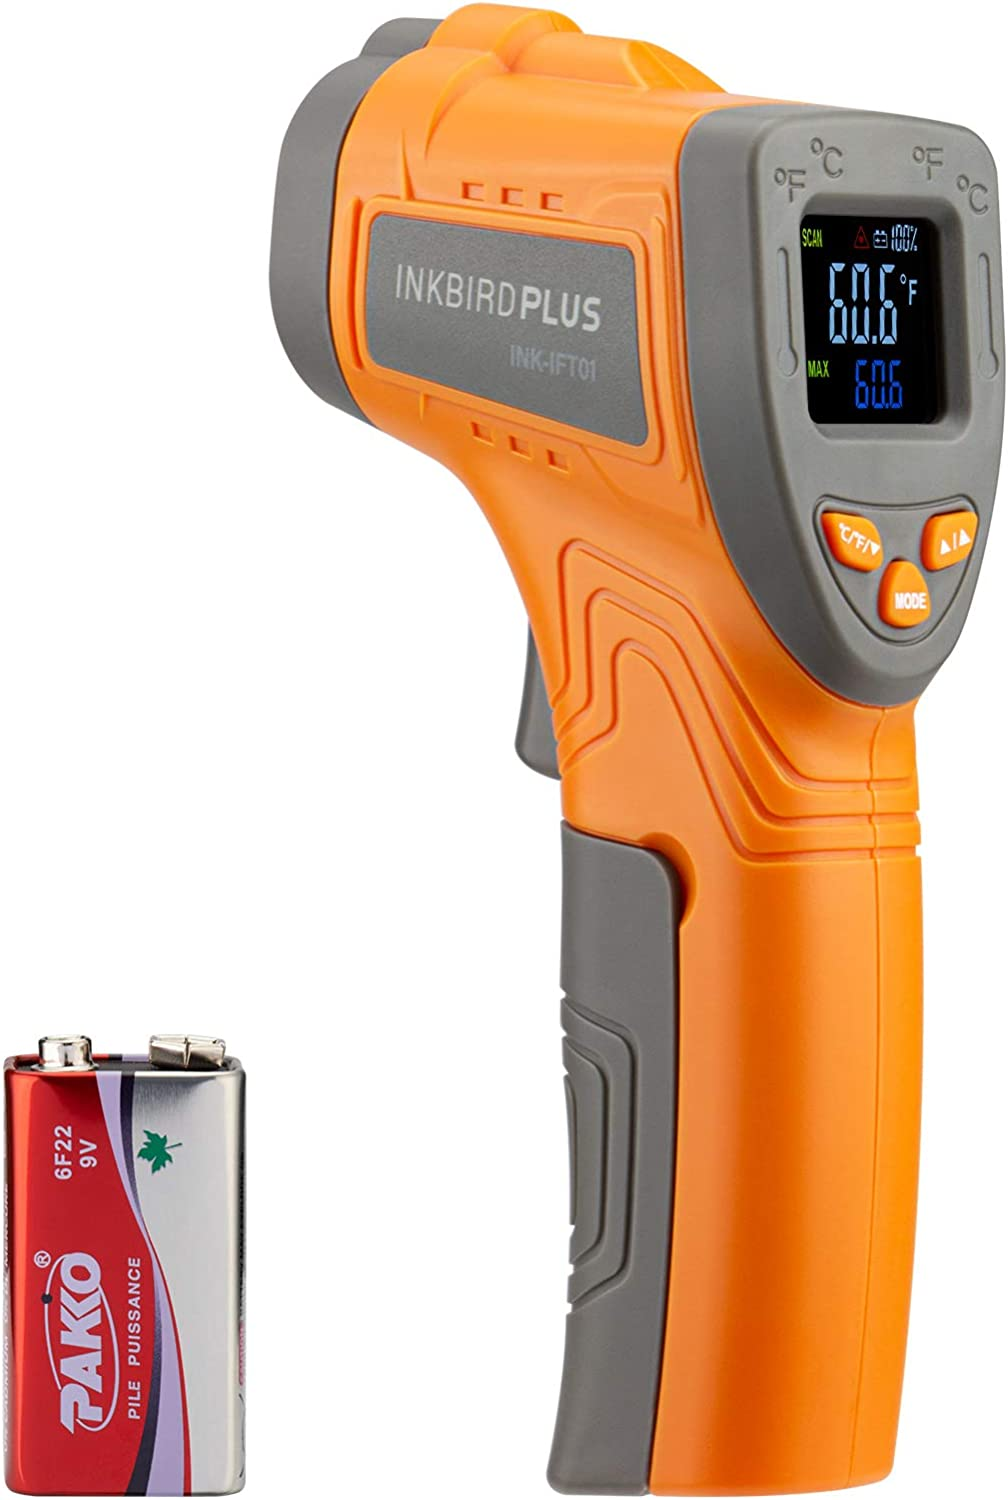 Inkbird Infrared Thermometer, Non-Contact Digital Temperature Gun with Adjustable Emissivity and Max Measure Instant Read Thermometer for Cooking, Barbecue, Automotive, and Industrial (NOT for Human)